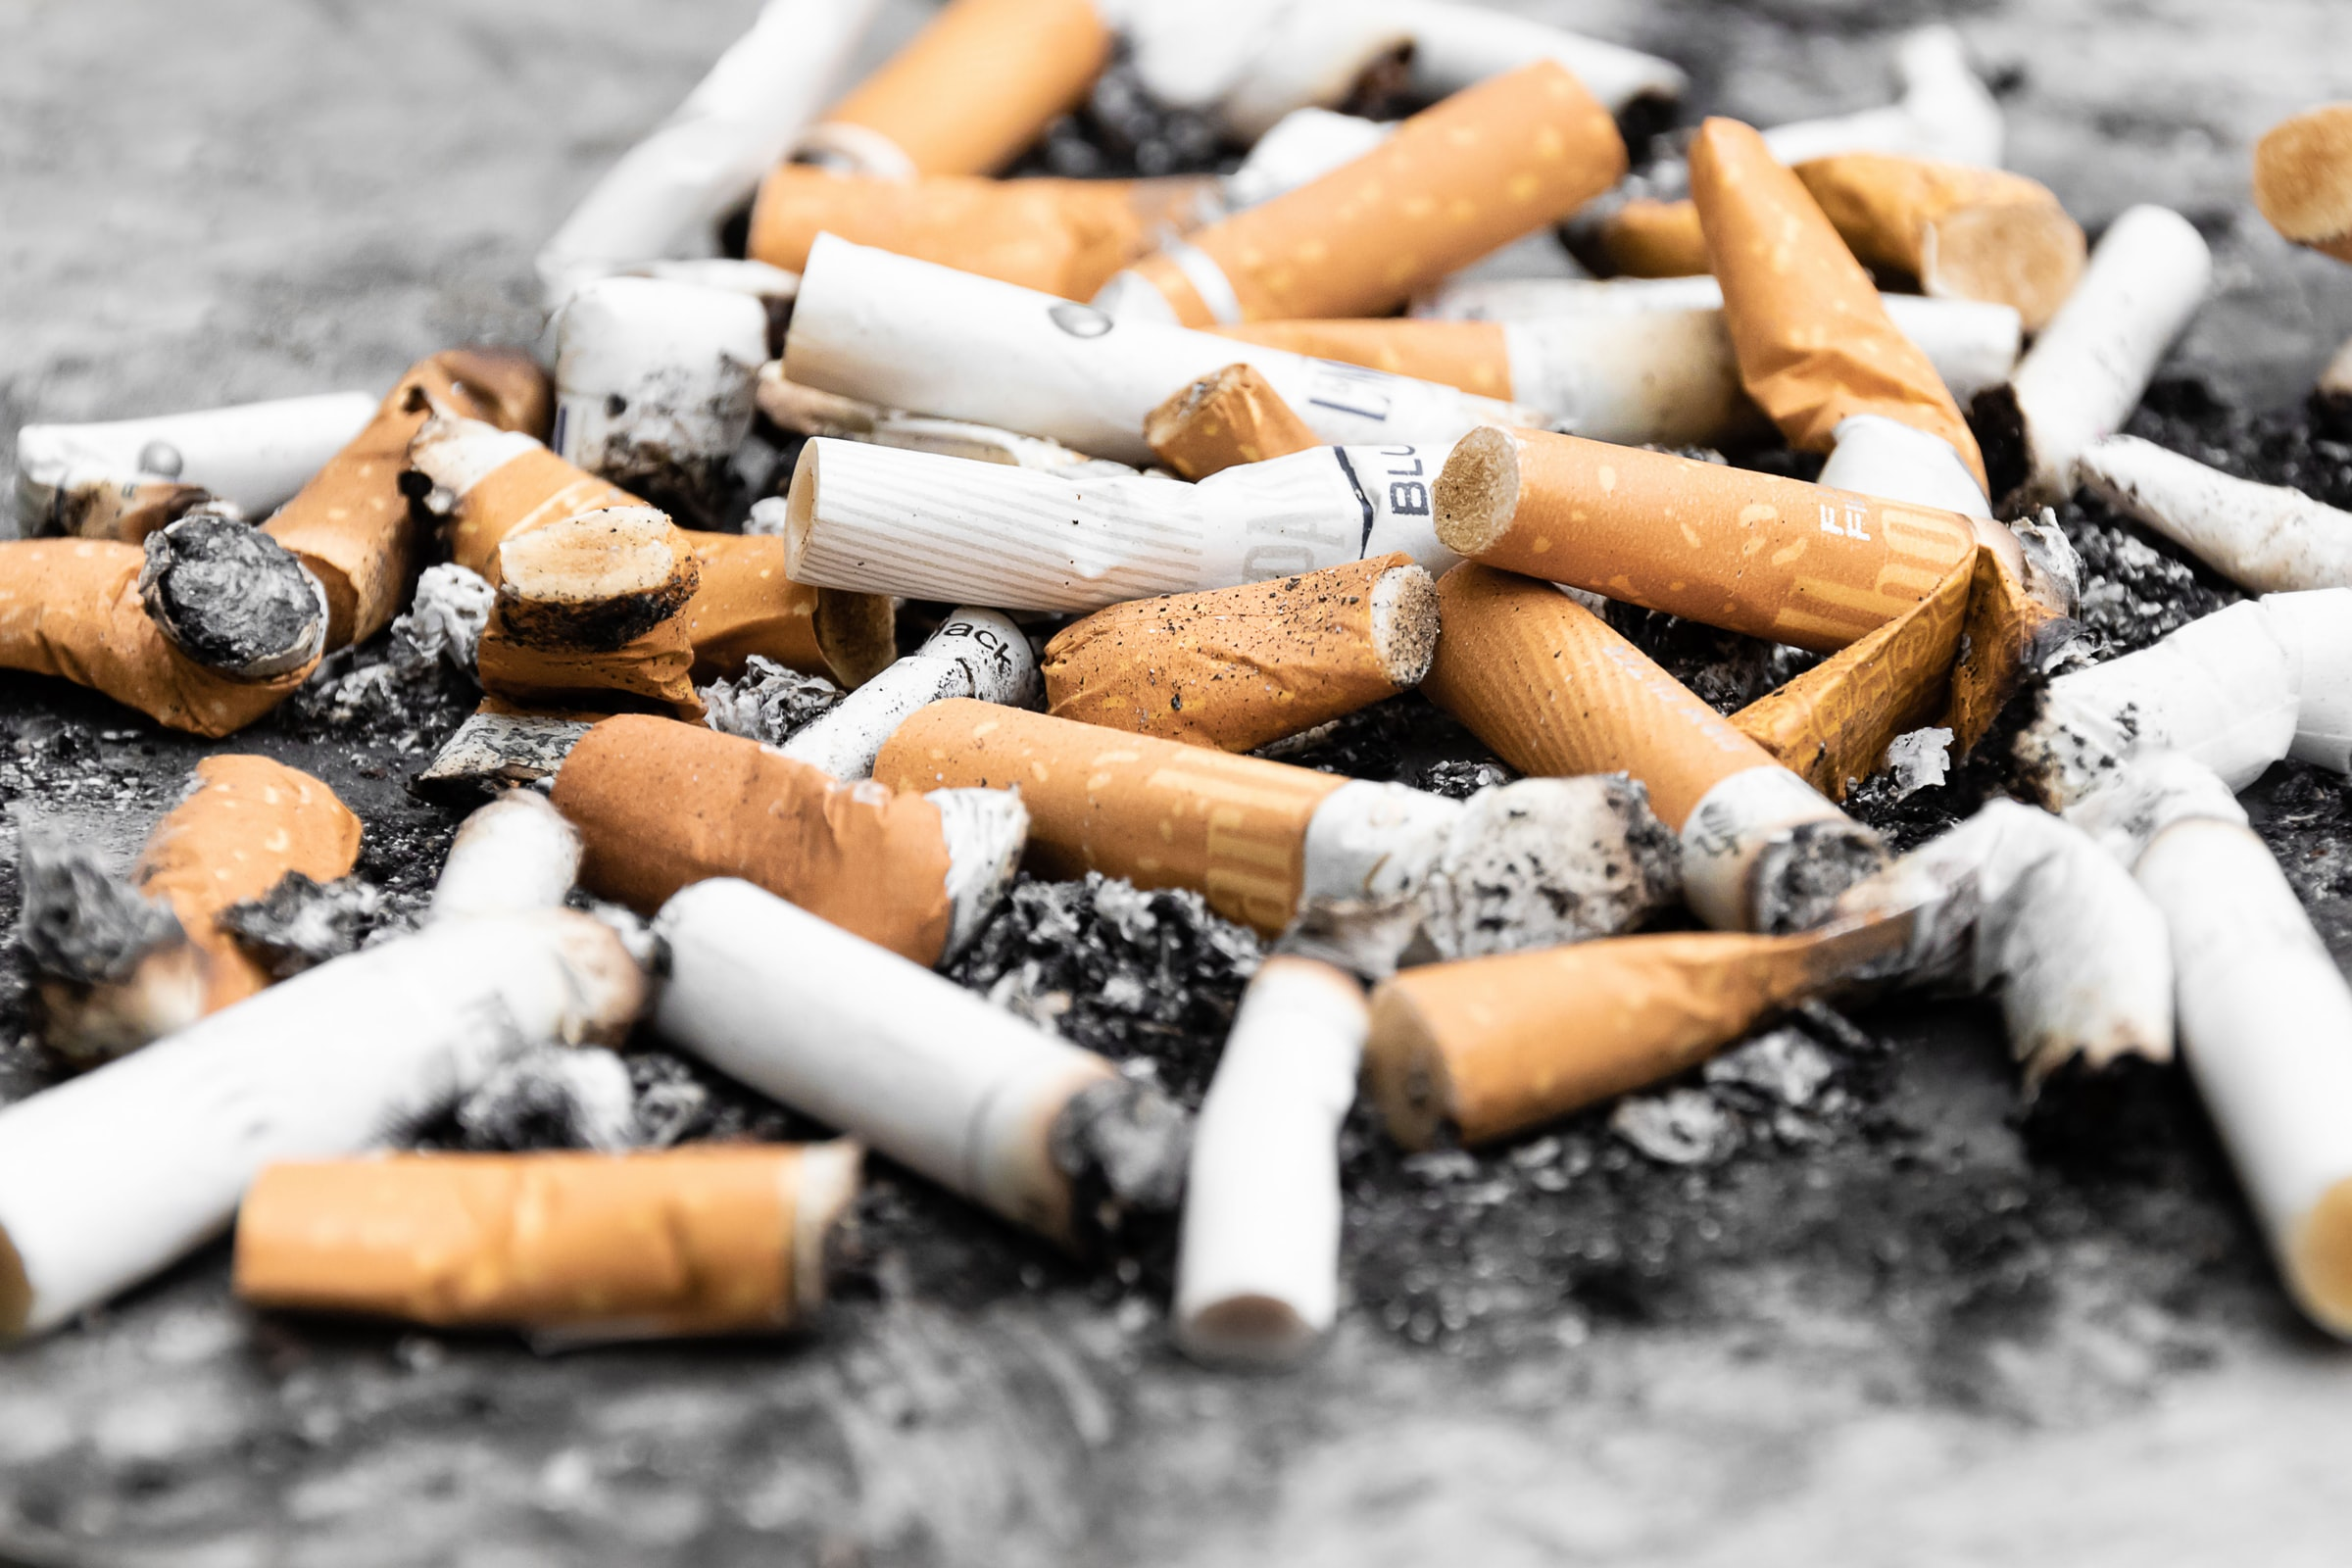 Pile of stubbed out cigarettes in ash.